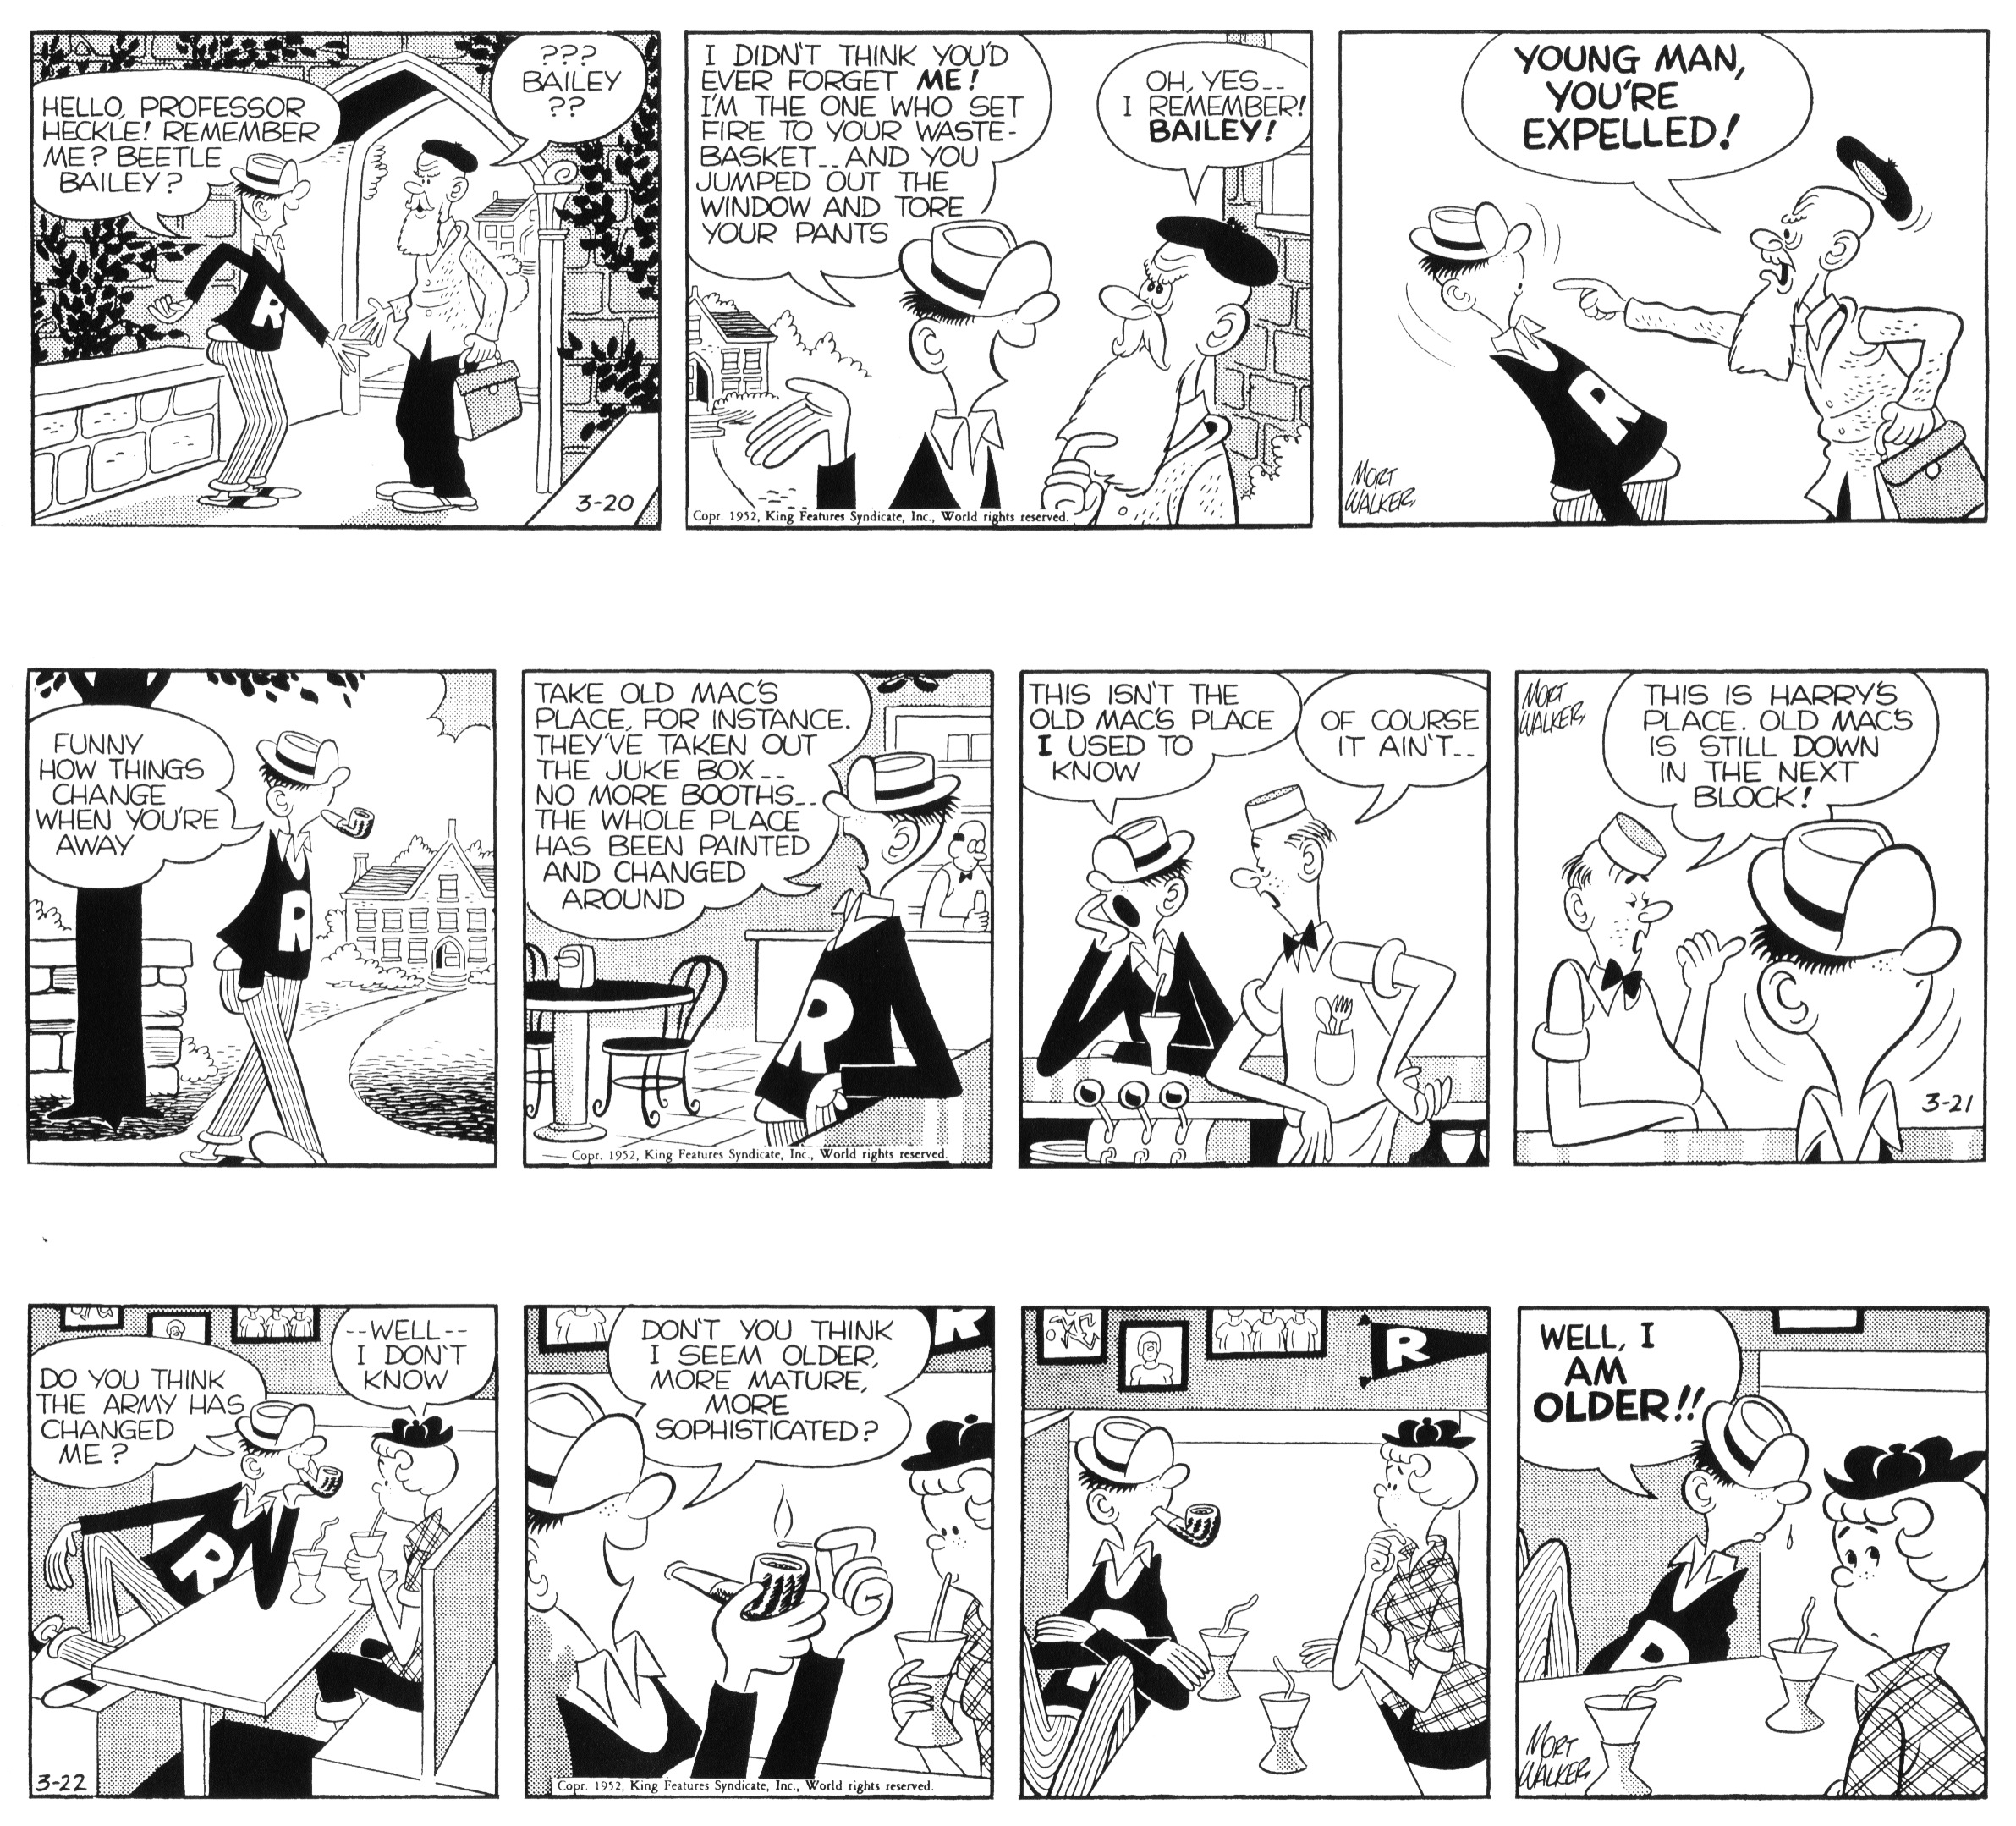 Beetle Bailey daily strips, March 20 to 22, 1952.